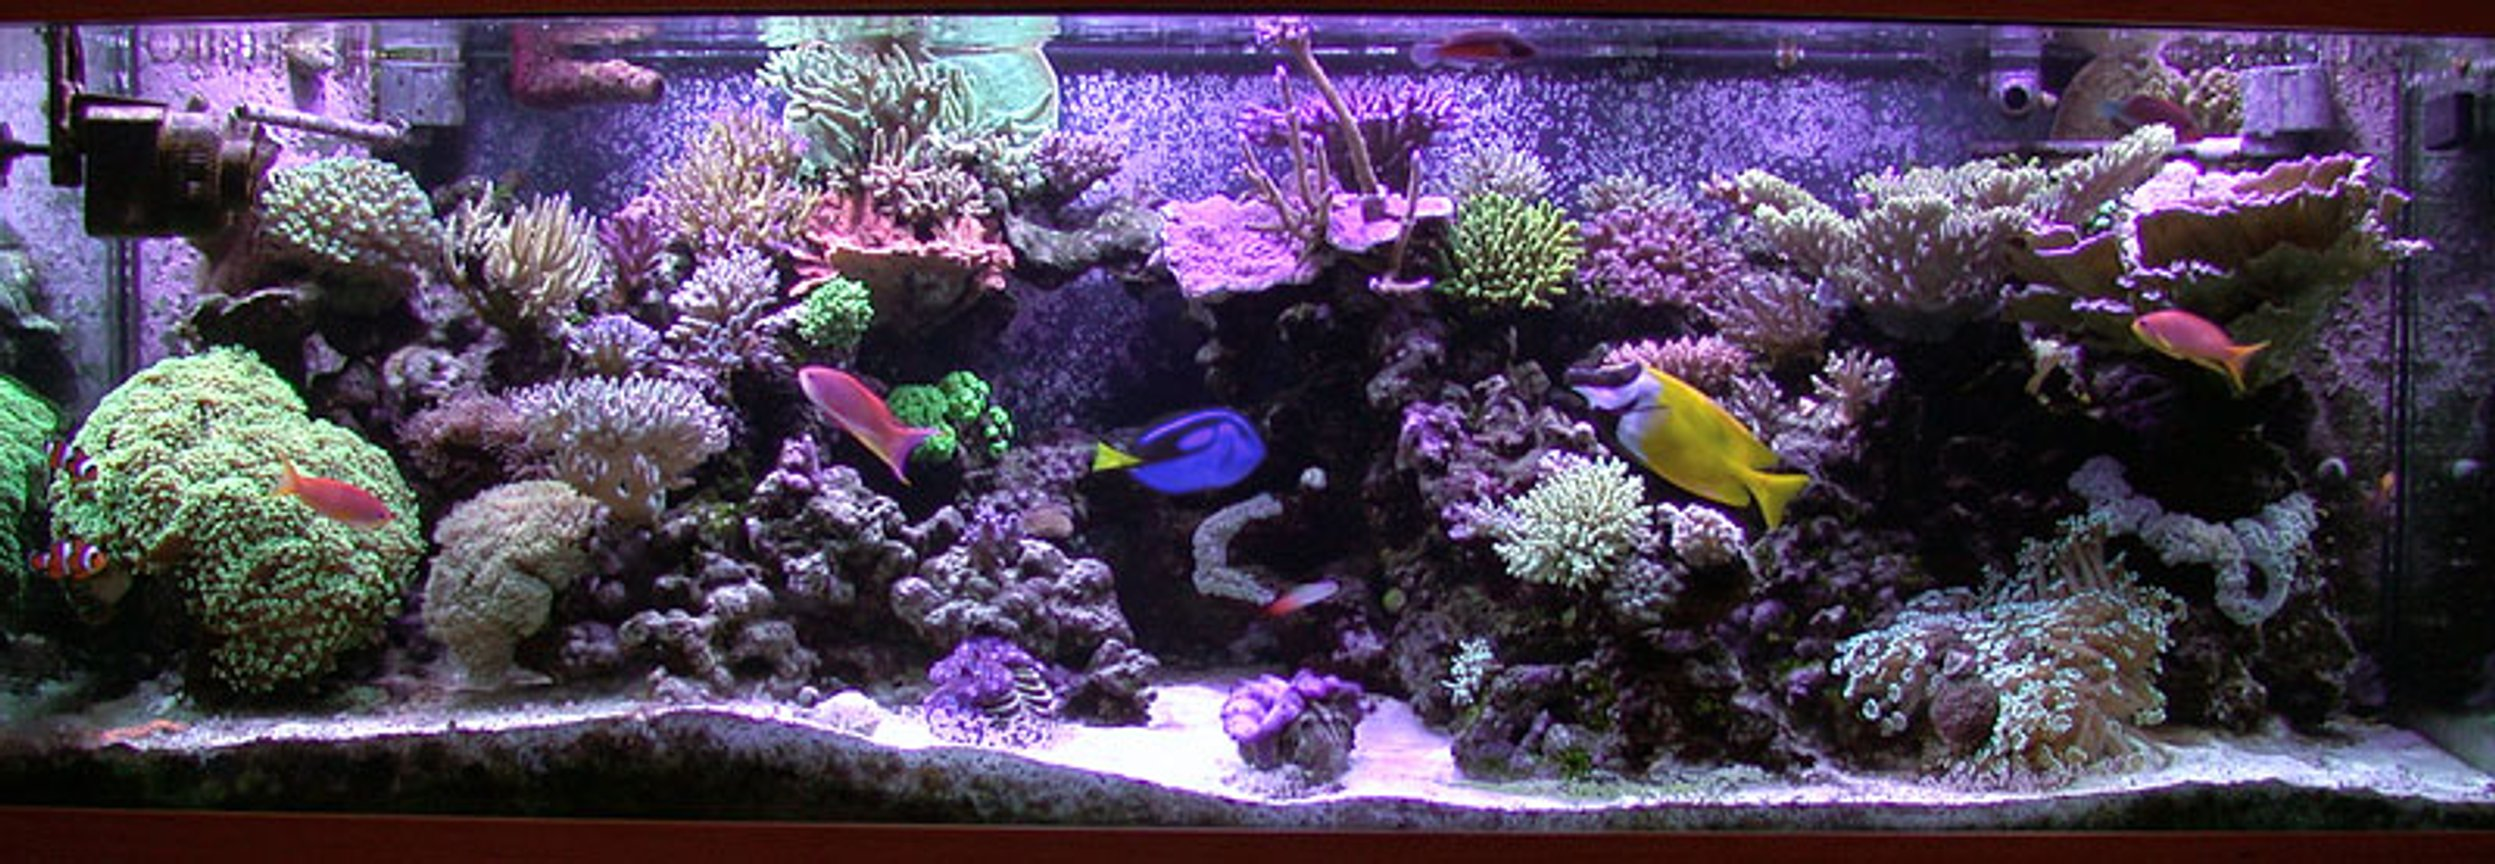 reef tank (mostly live coral and fish) - 180 gallon sps/hardcoral reef tank. Modifed berlin setup, LR/LS.